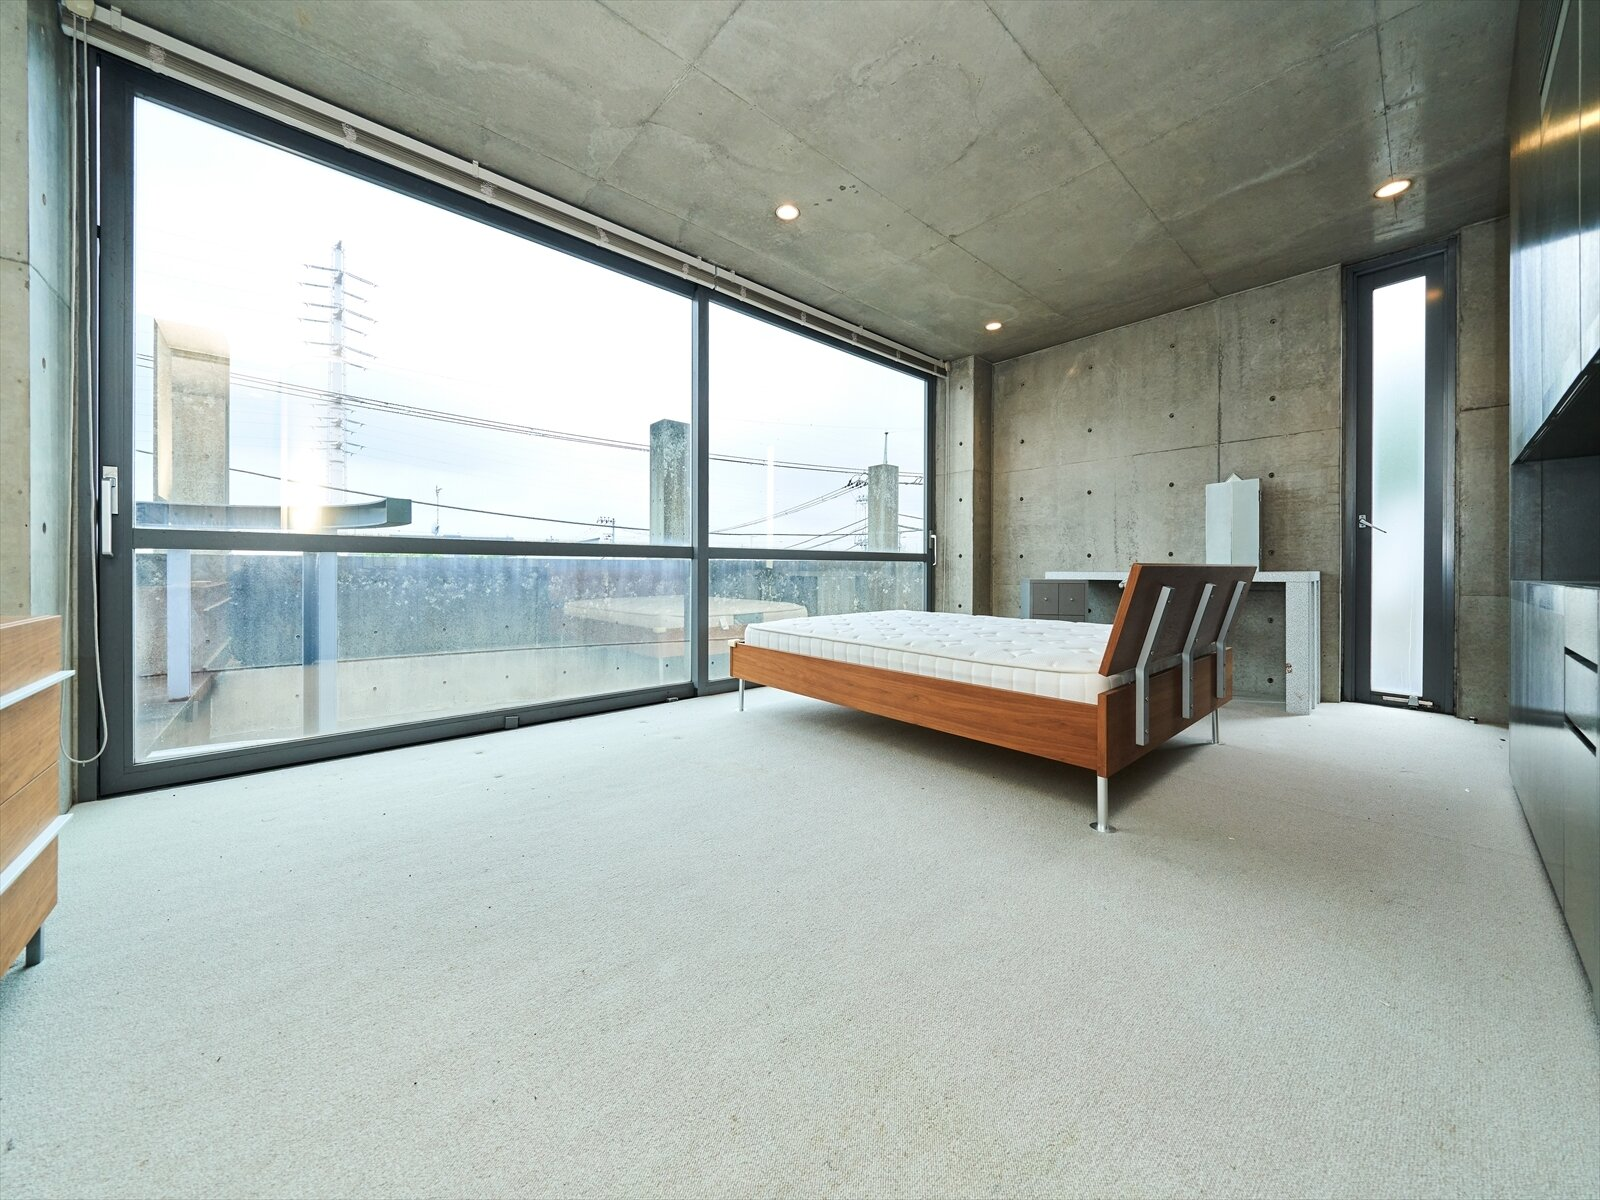 The top-floor features a large bedroom overlooking the courtyard below and rooftop patio.  Photo 7 of 11 in Tadao Ando's Curved Concrete Ito House Asks $7M in Tokyo